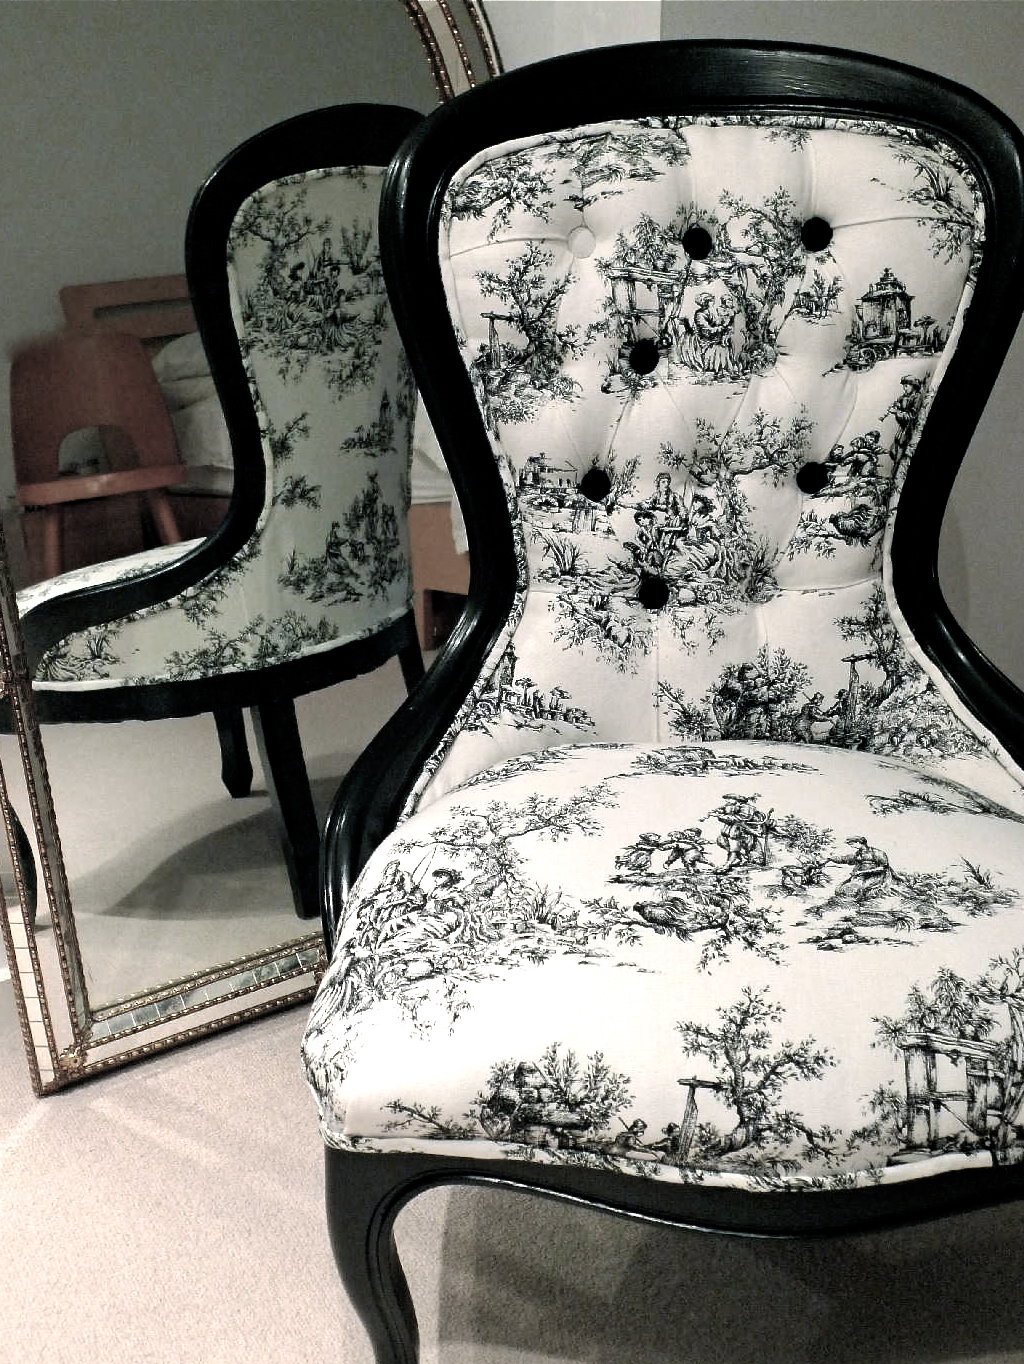 Toile Chair Jo Price Upholstery 43 Design Commissions